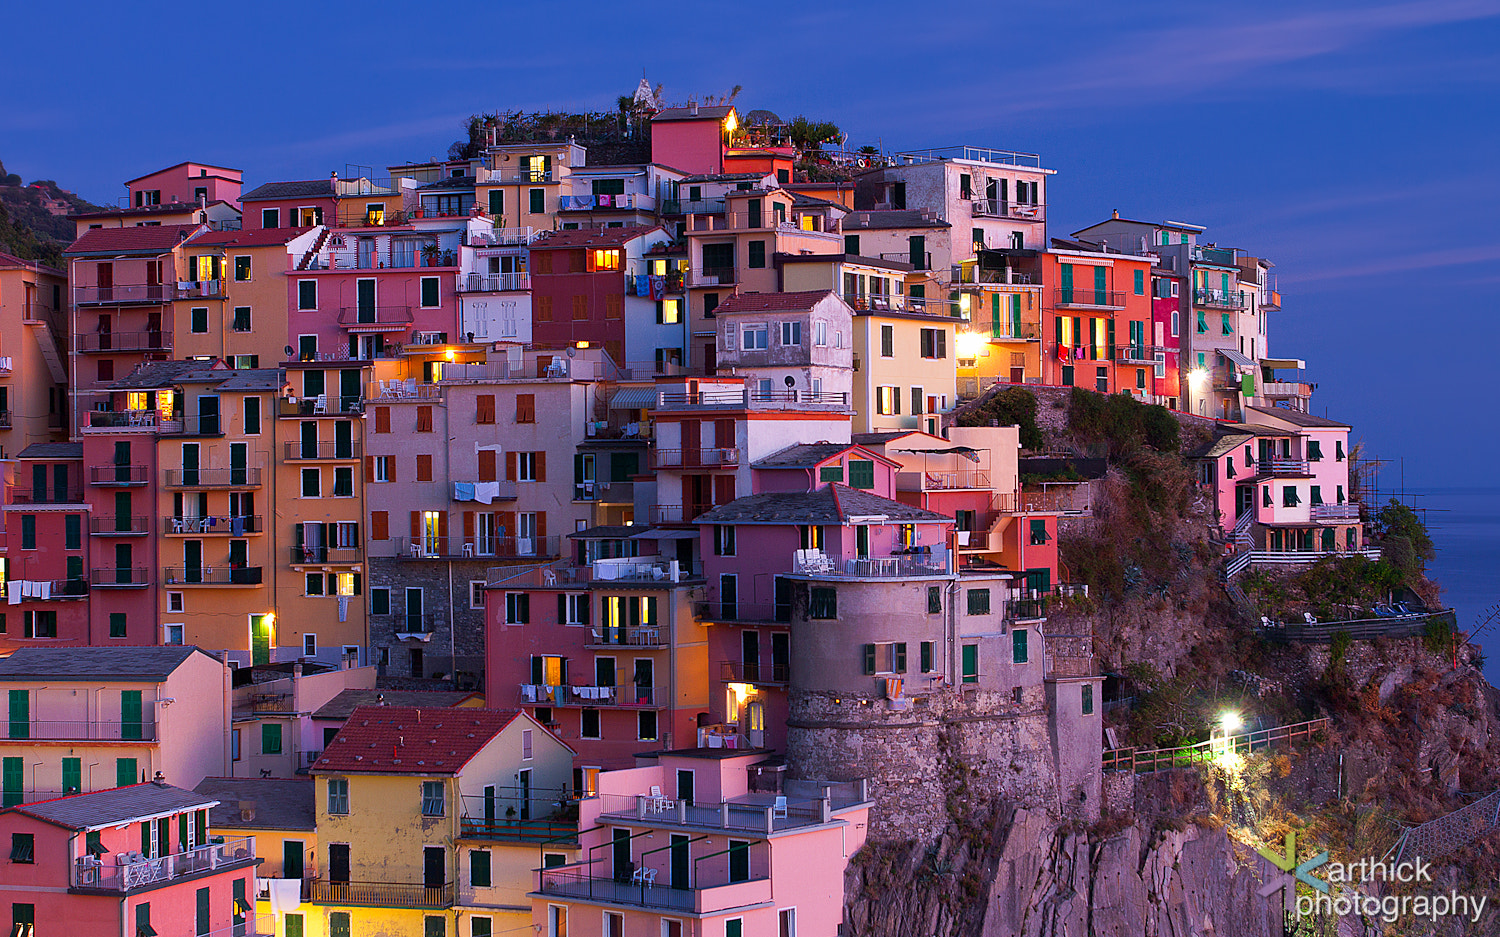 Photograph Colorful Manarola by Karthick Ramachandran on 500px